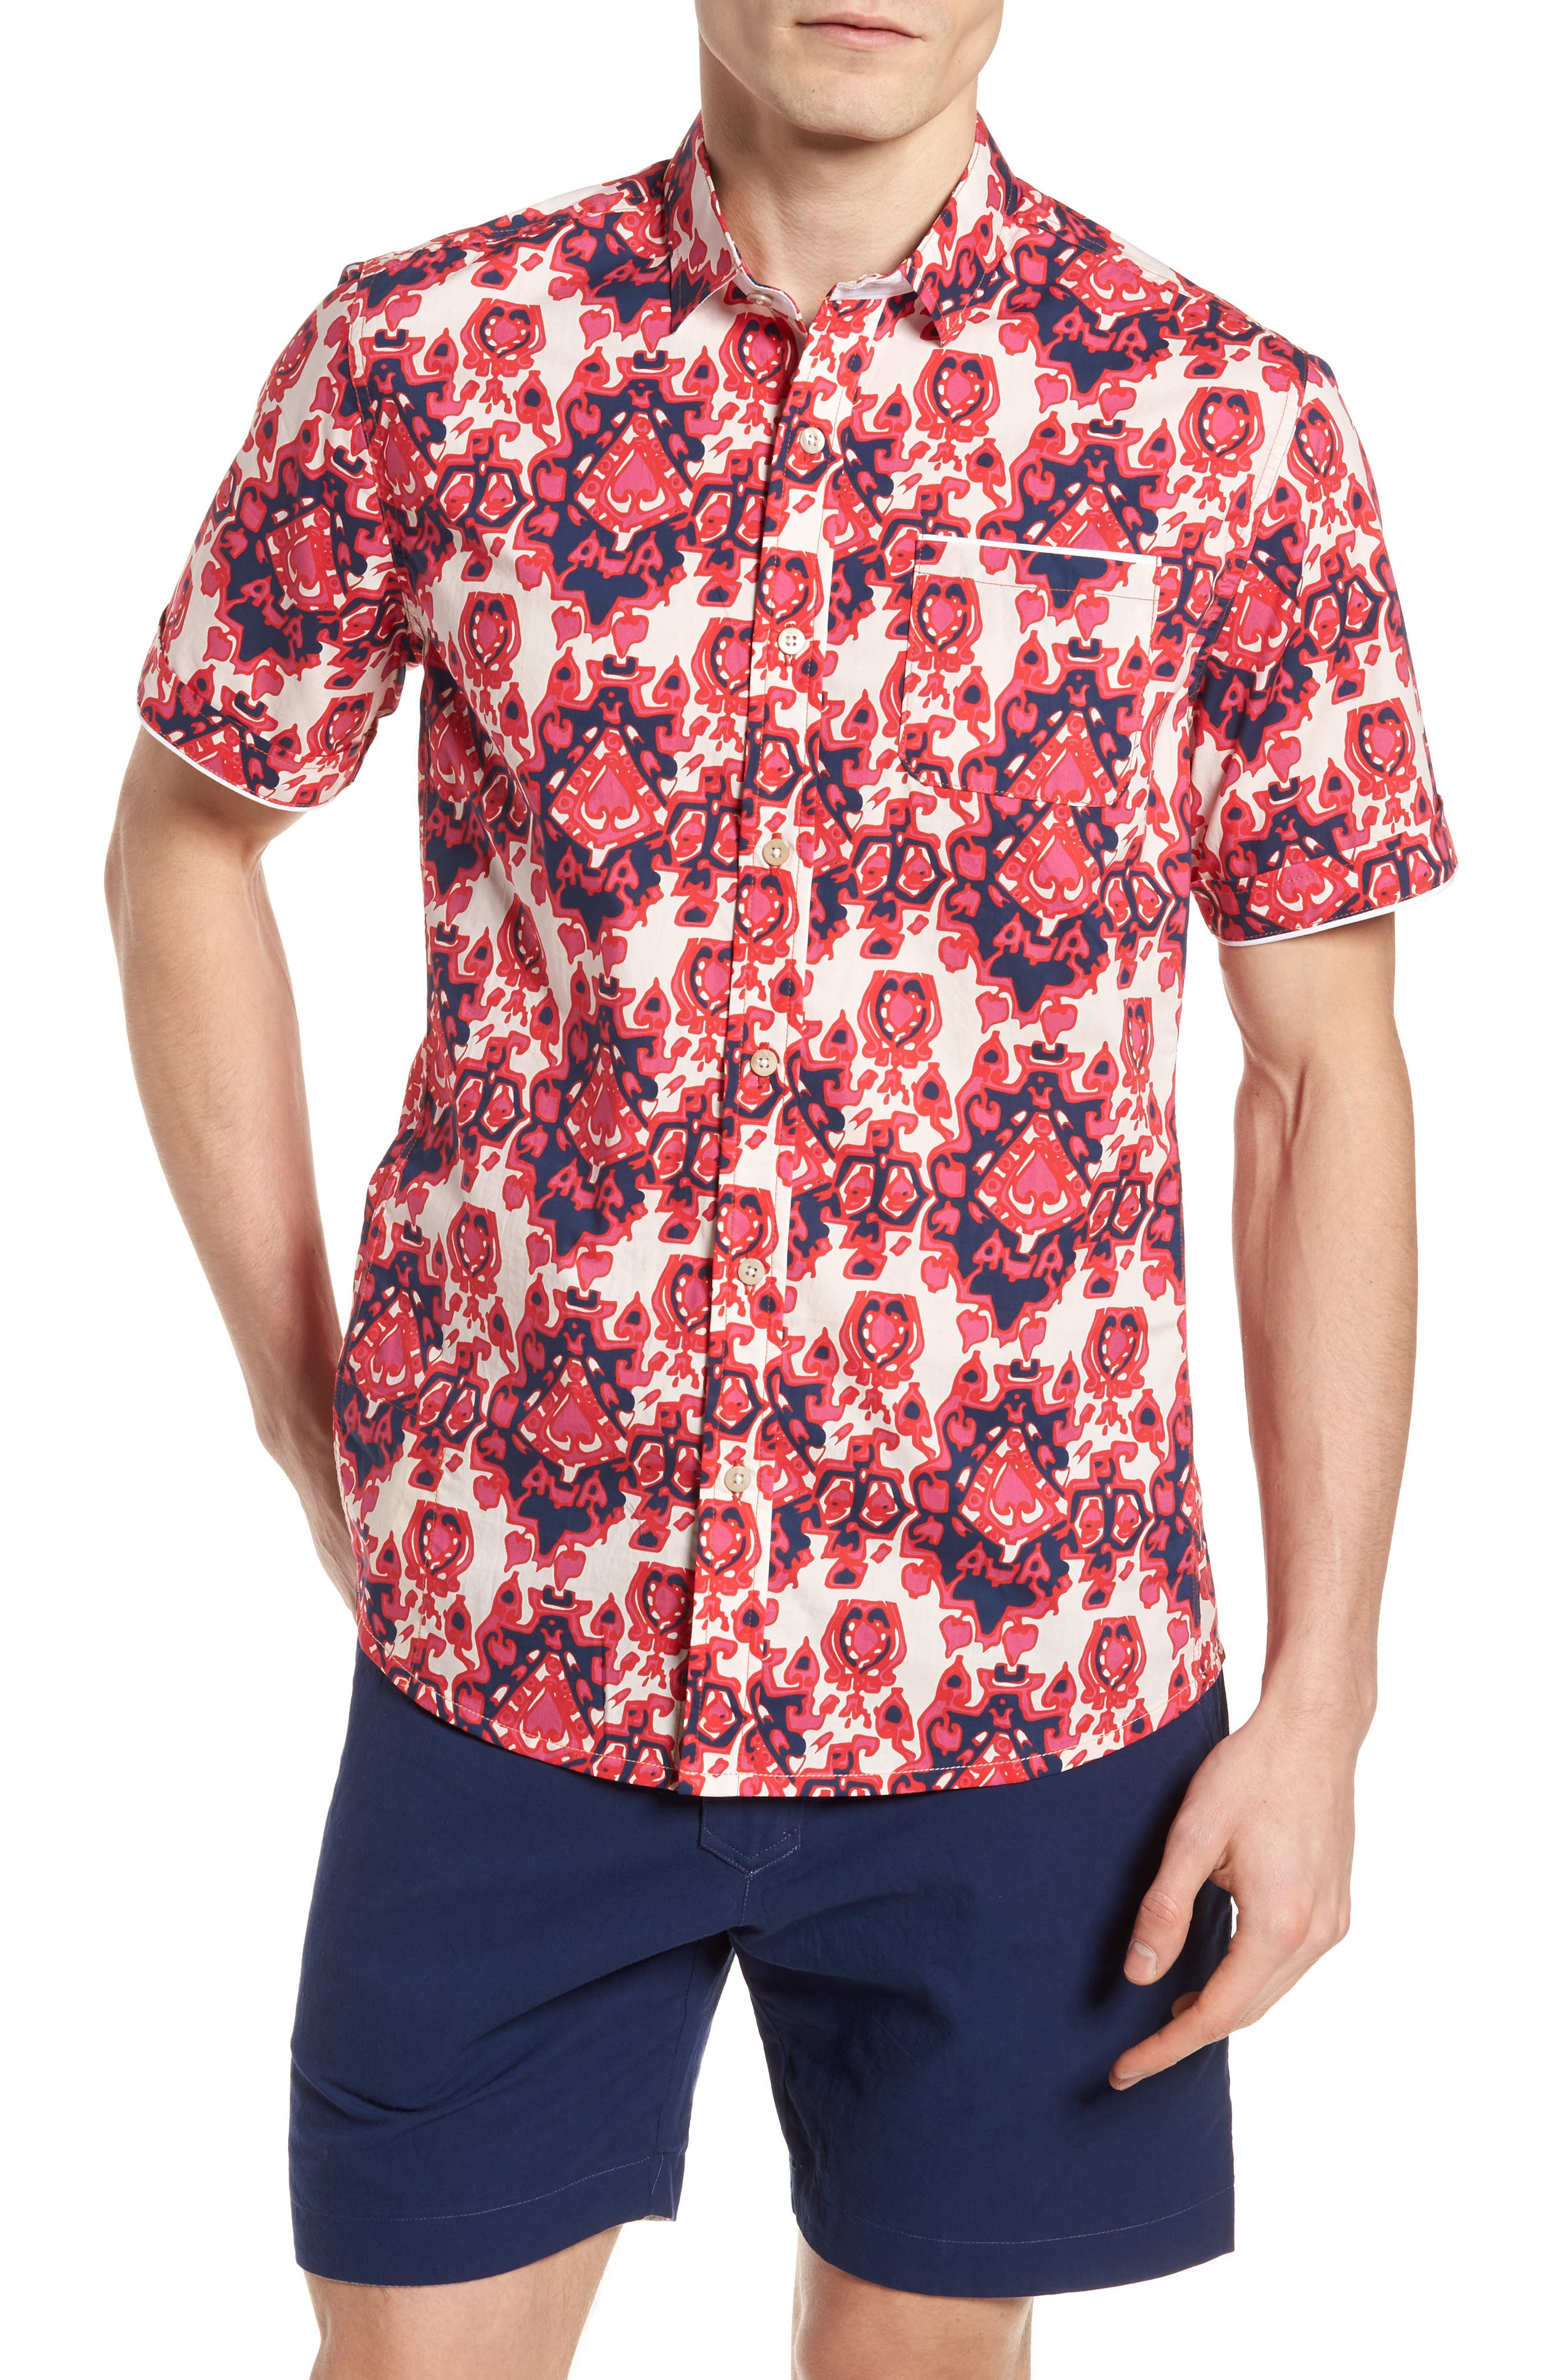 Abstract Culture Woven Shirt,                         Main,                         color, Punch Red